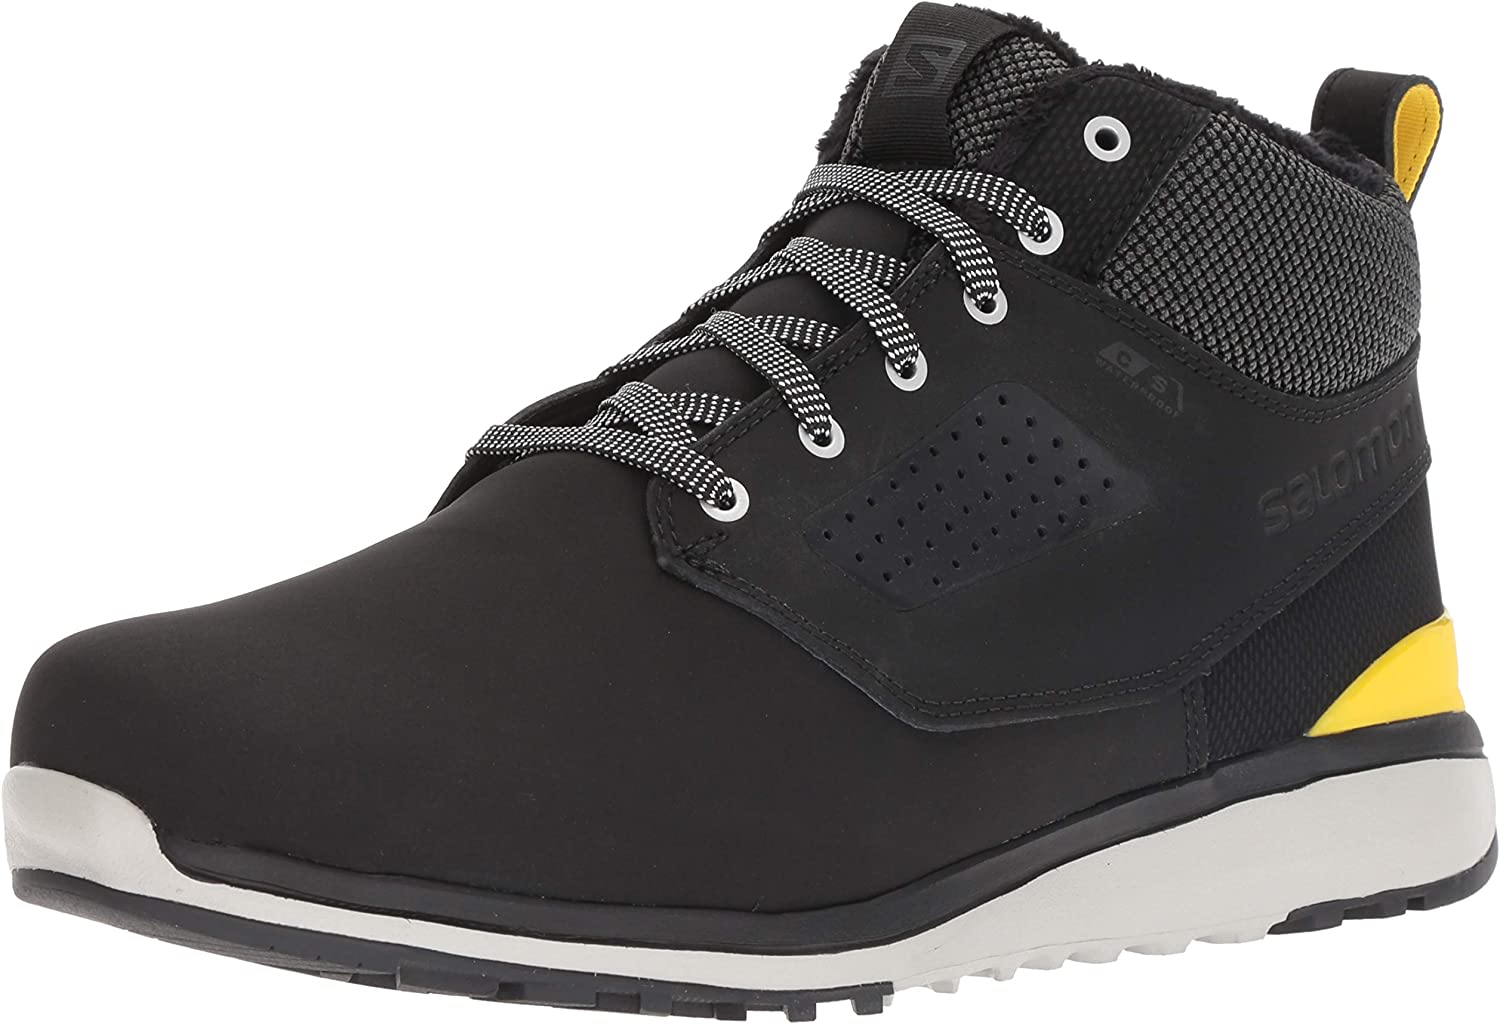 SALOMON Herren Utility Freeze Cs Wp Walking Shoe